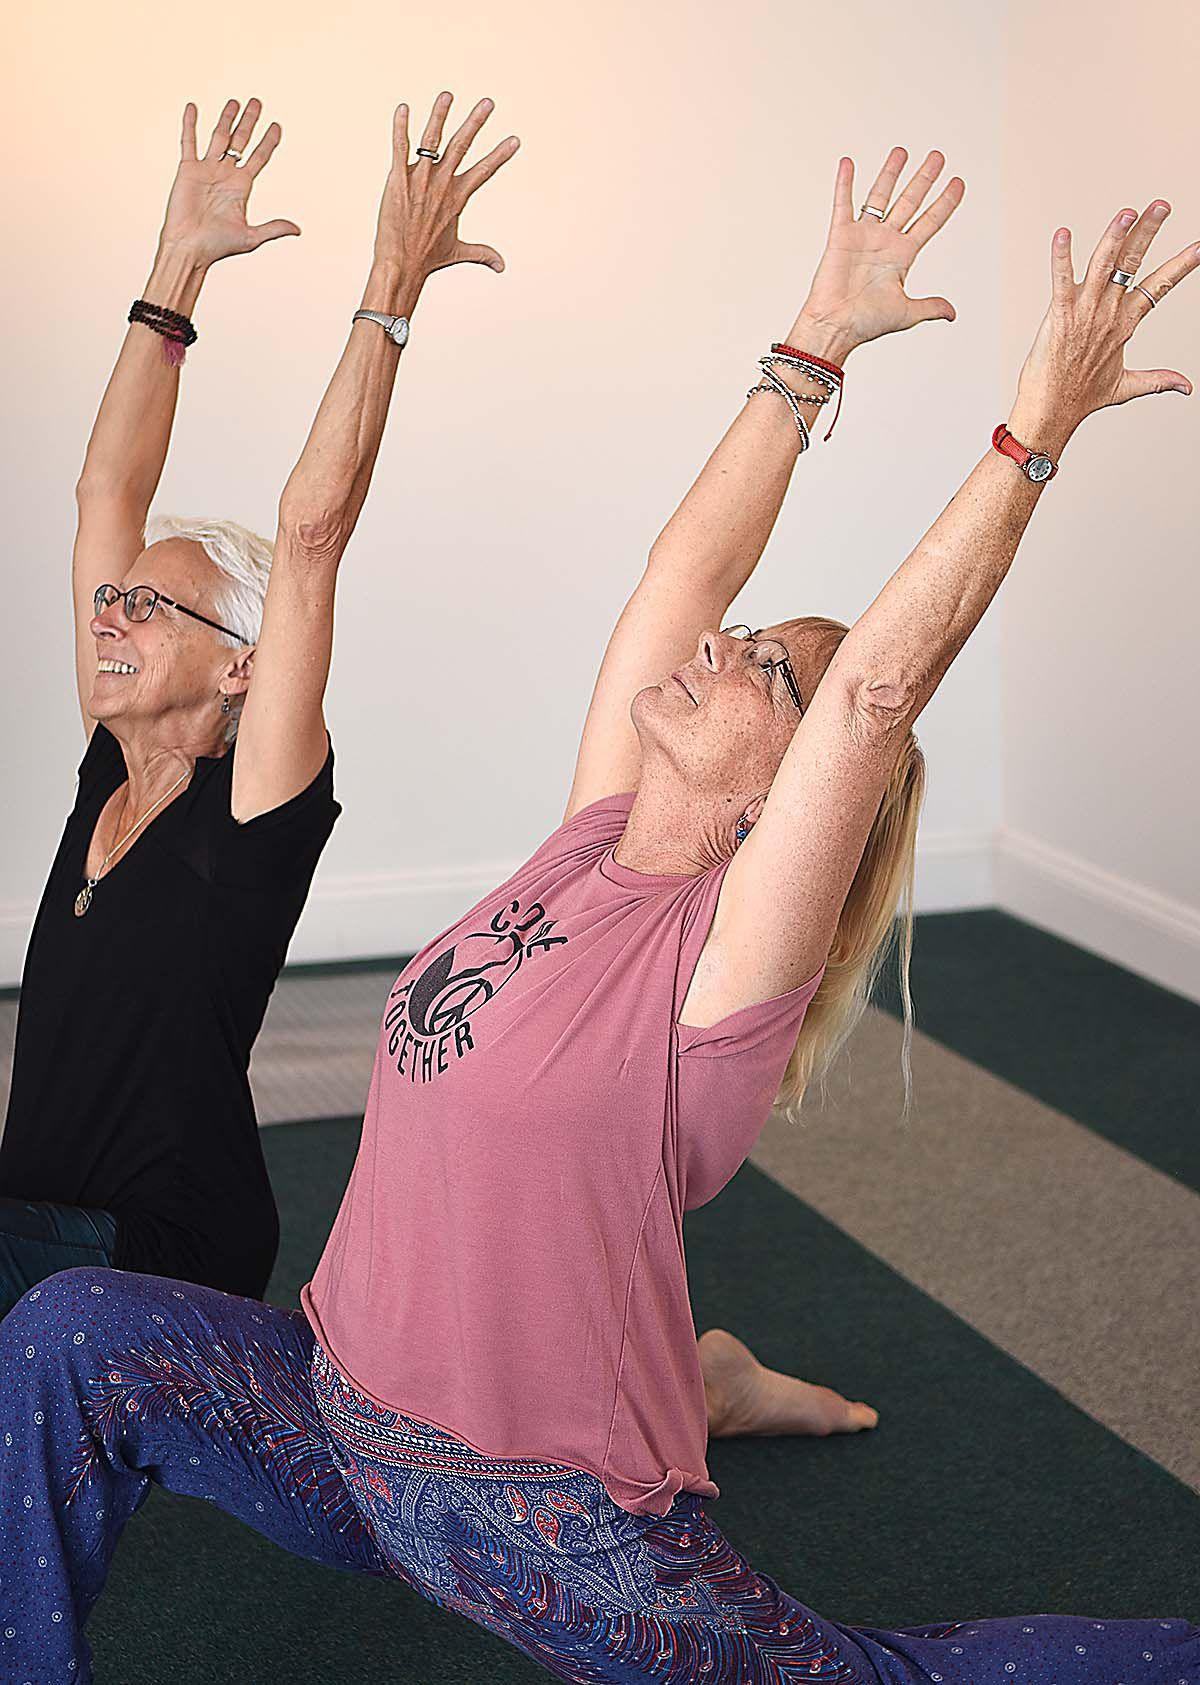 Duo helping people find freedom in prison through yoga